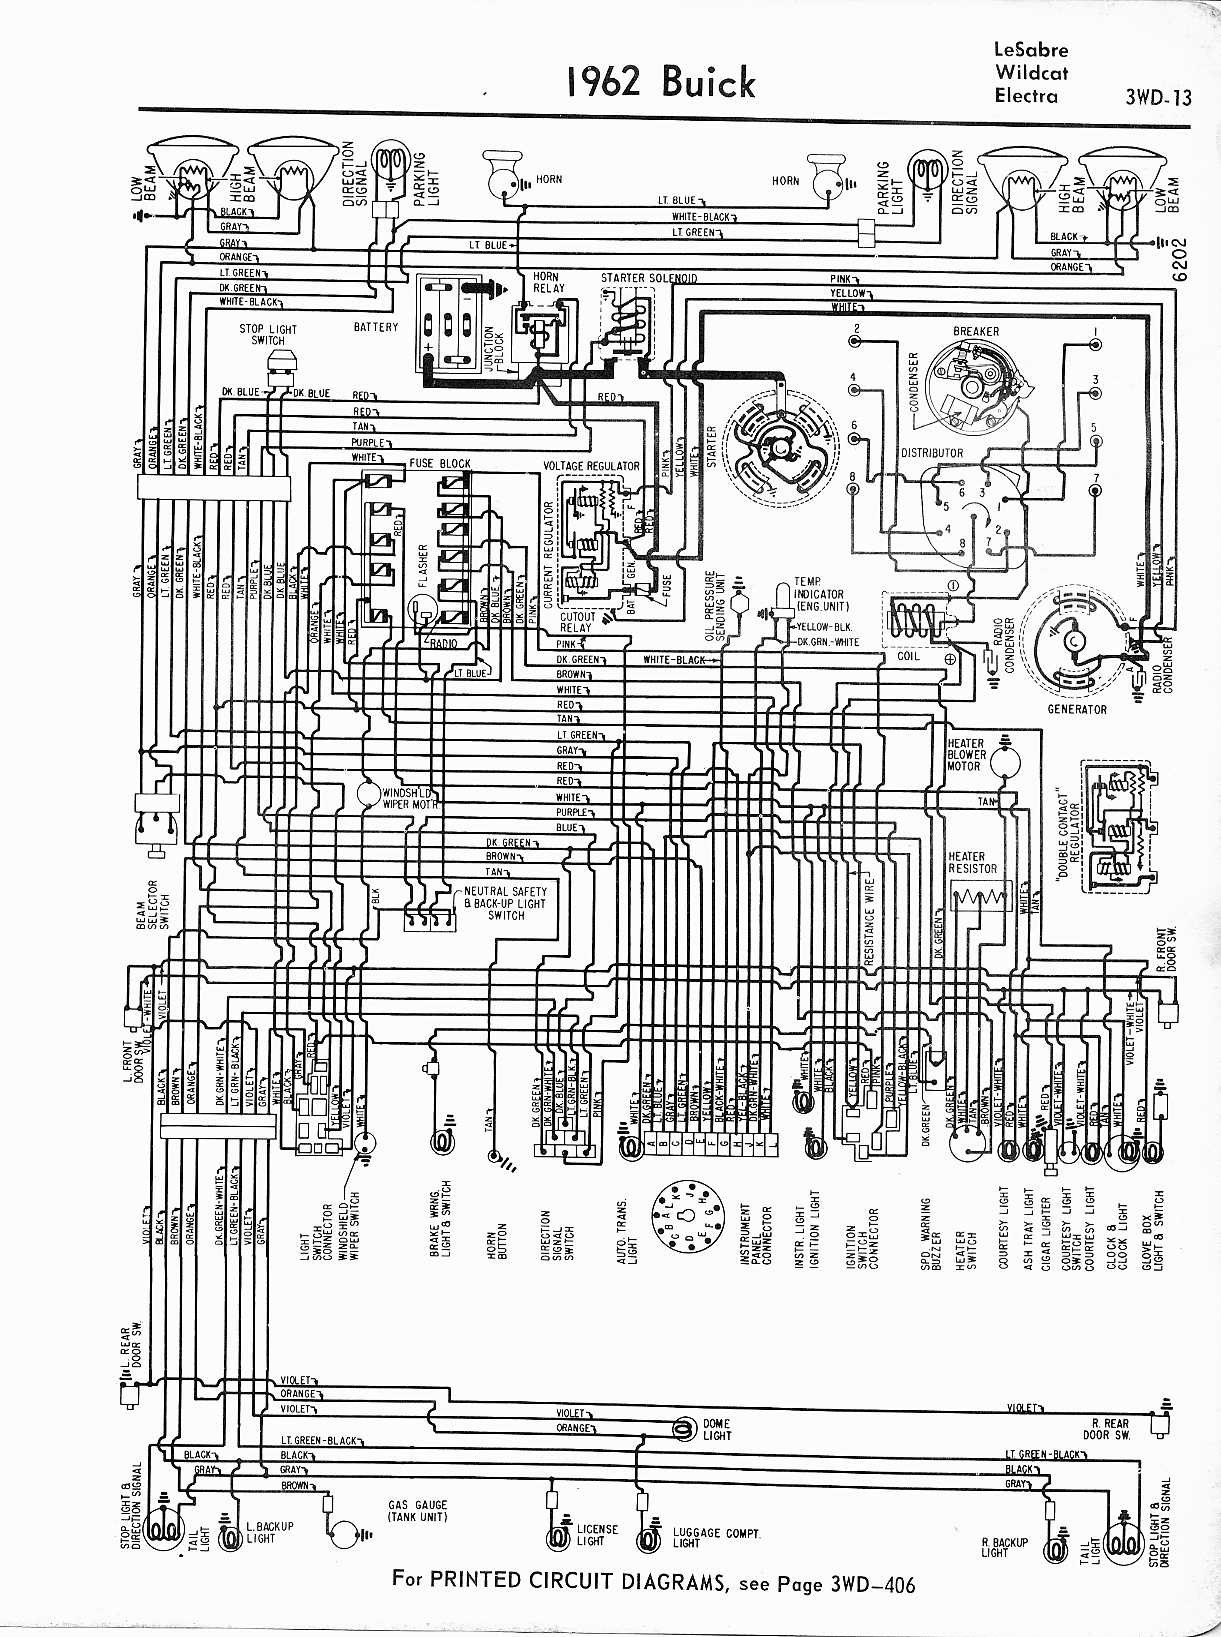 [DIAGRAM_3ER]  99D65 1998 Buick Lesabre Wiring Diagram Free Download | Wiring Library | 1998 Buick Lesabre Engine Diagram Regulator |  | Wiring Library